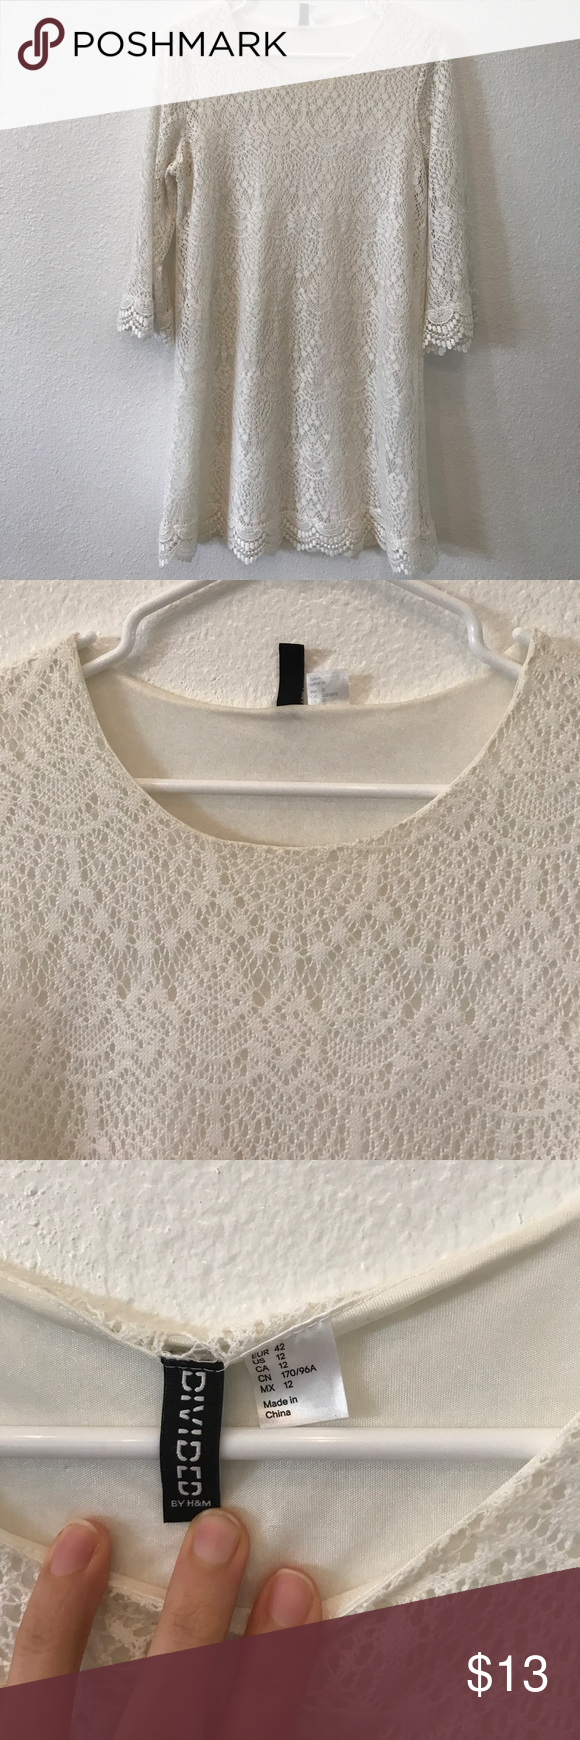 H&m lace dress white  HuM women size  white lace dress with slipUsed  White lace